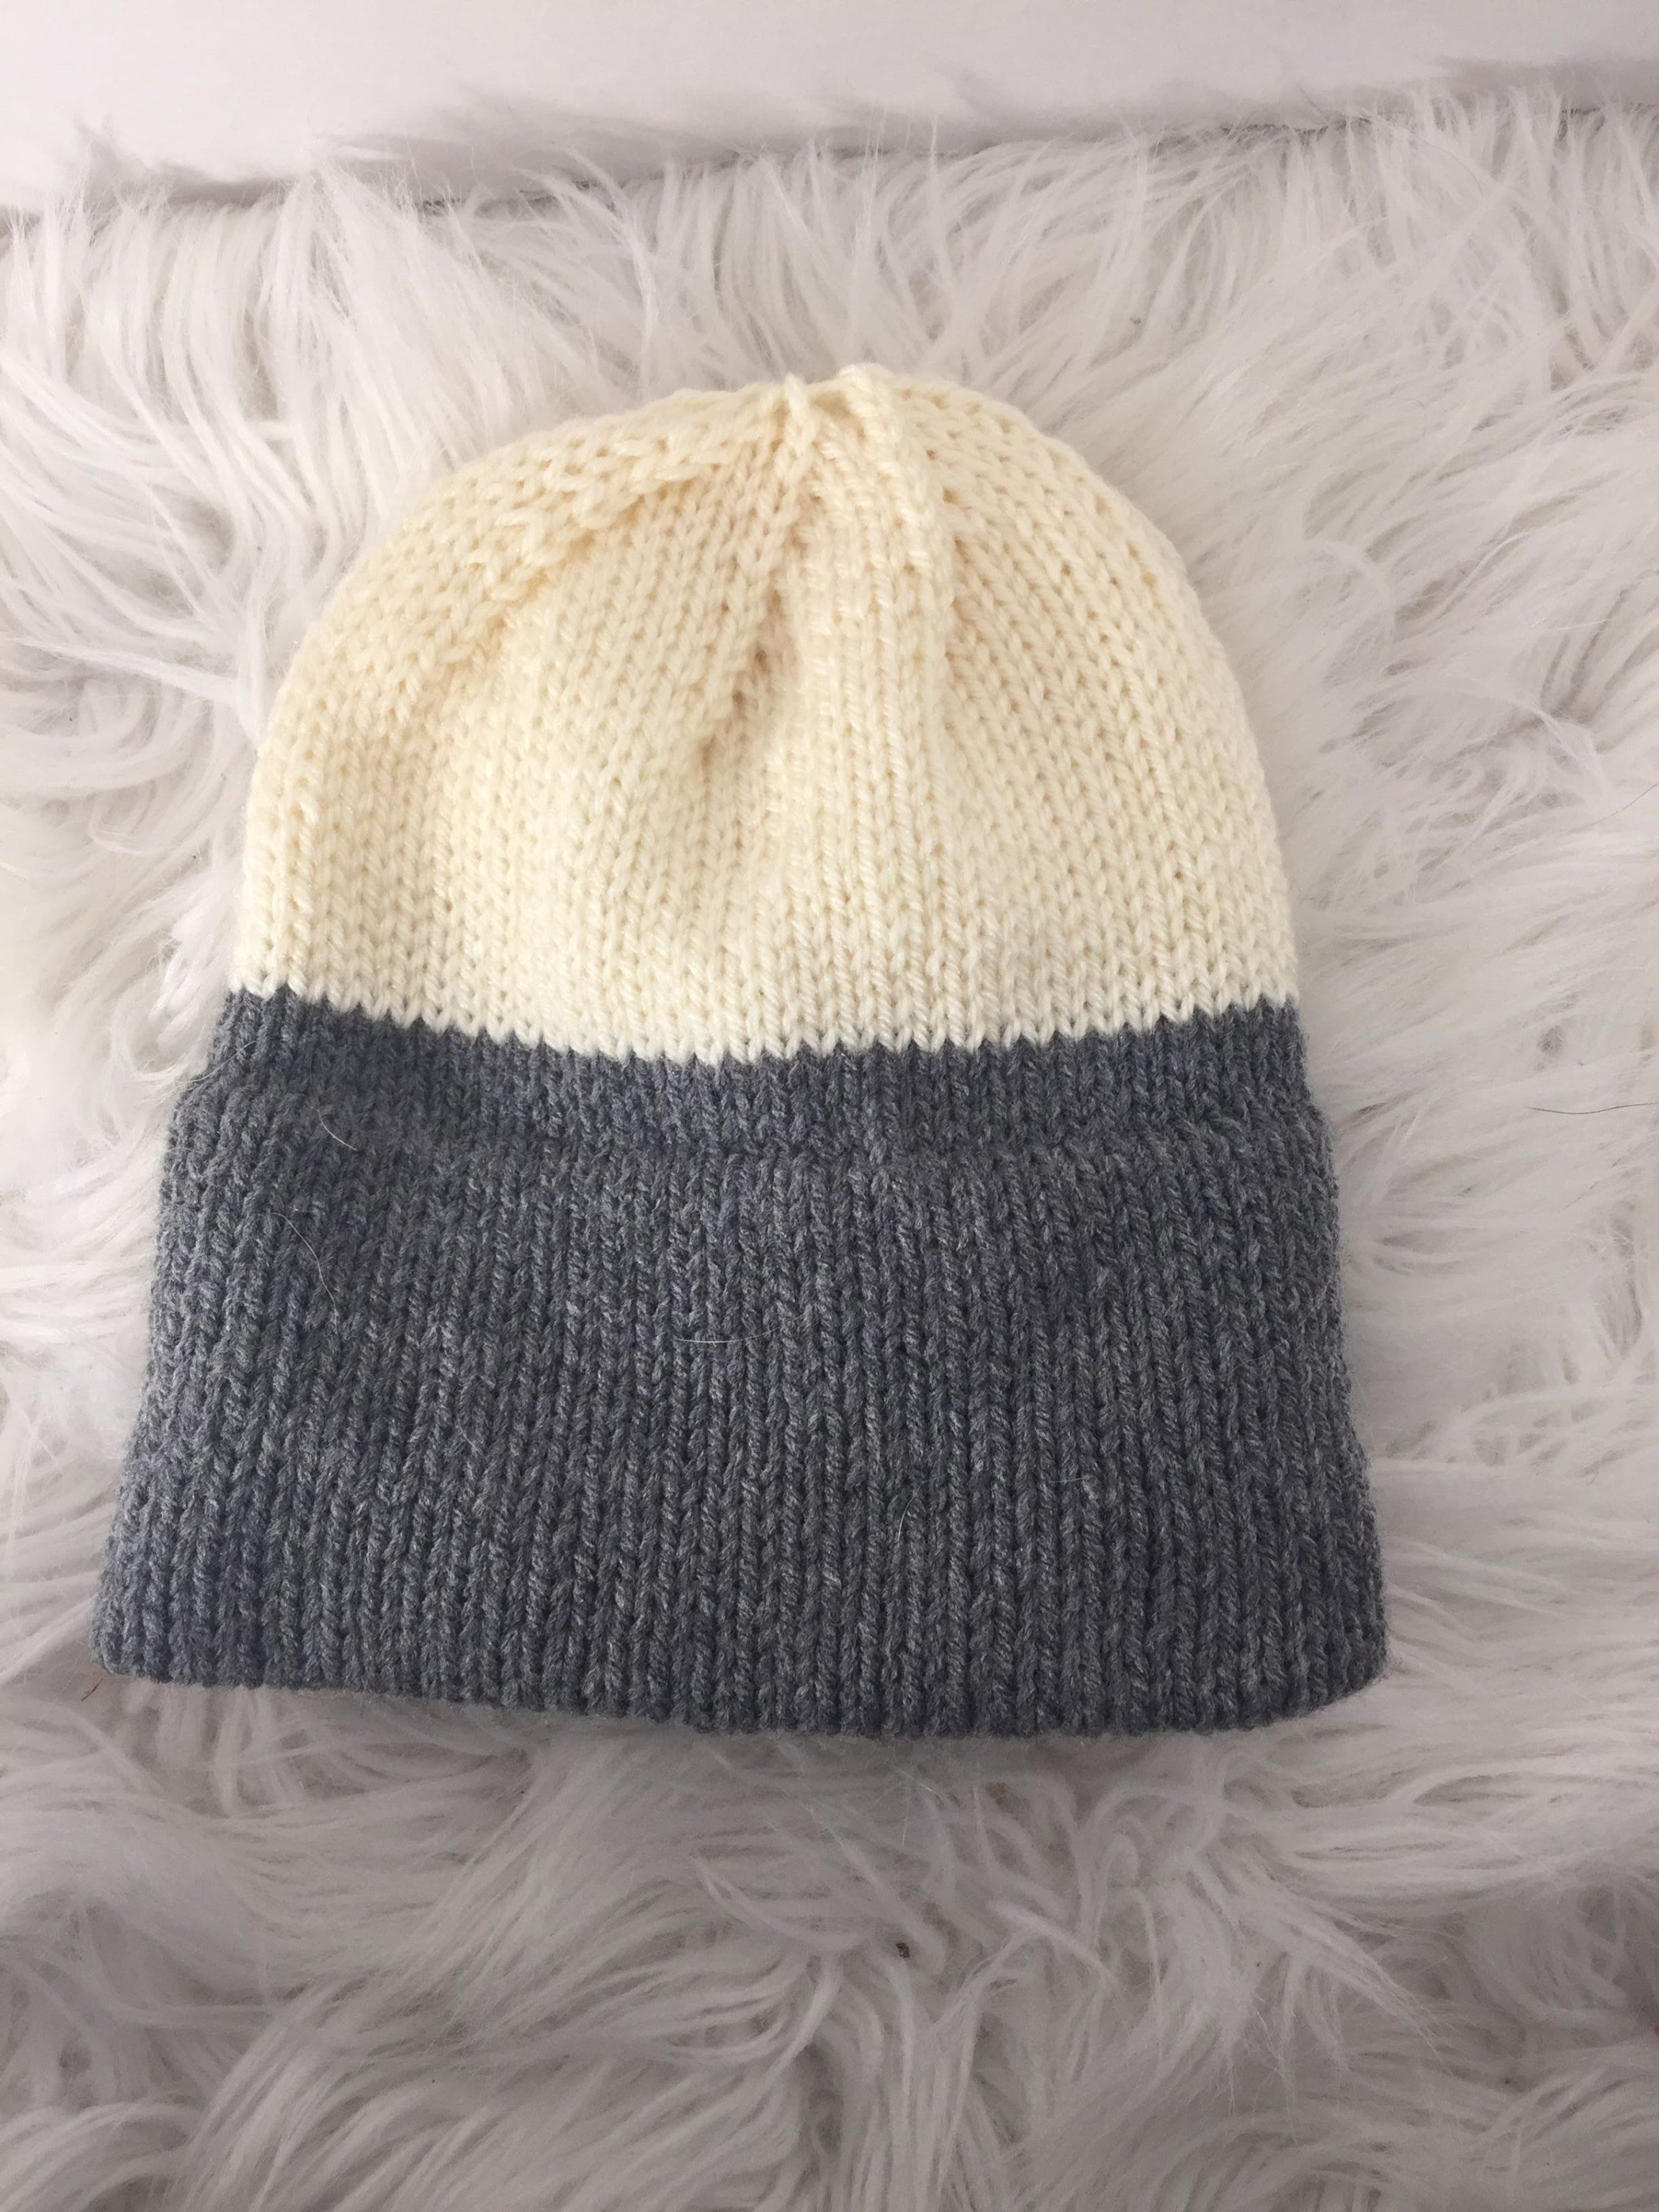 Double Knit Brim Hat | Mens hat knitting pattern, Hat ...